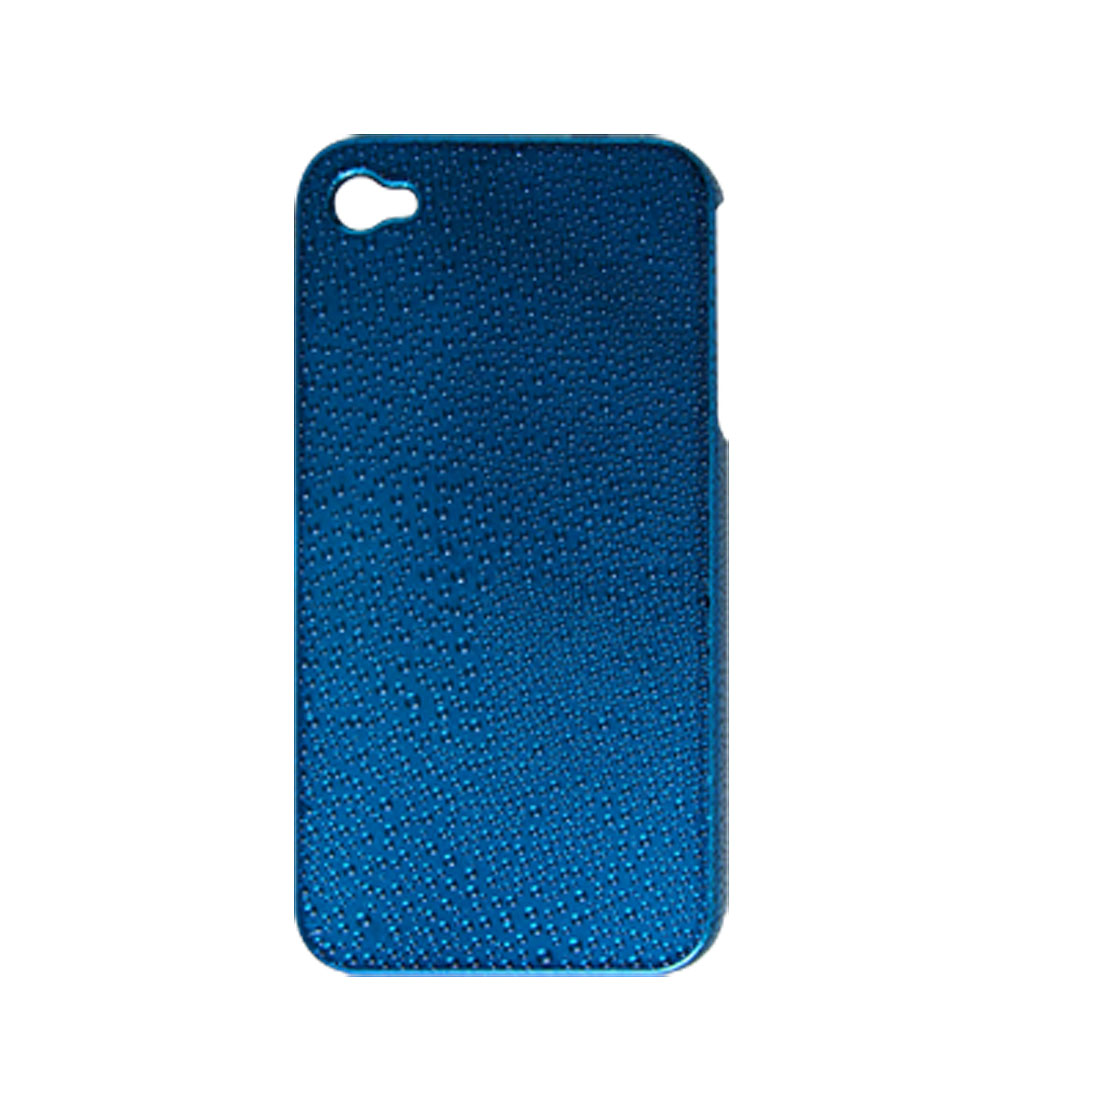 Blue Plated Nonslip Raindrop Hard Plastic Case for iPhone 4 4G